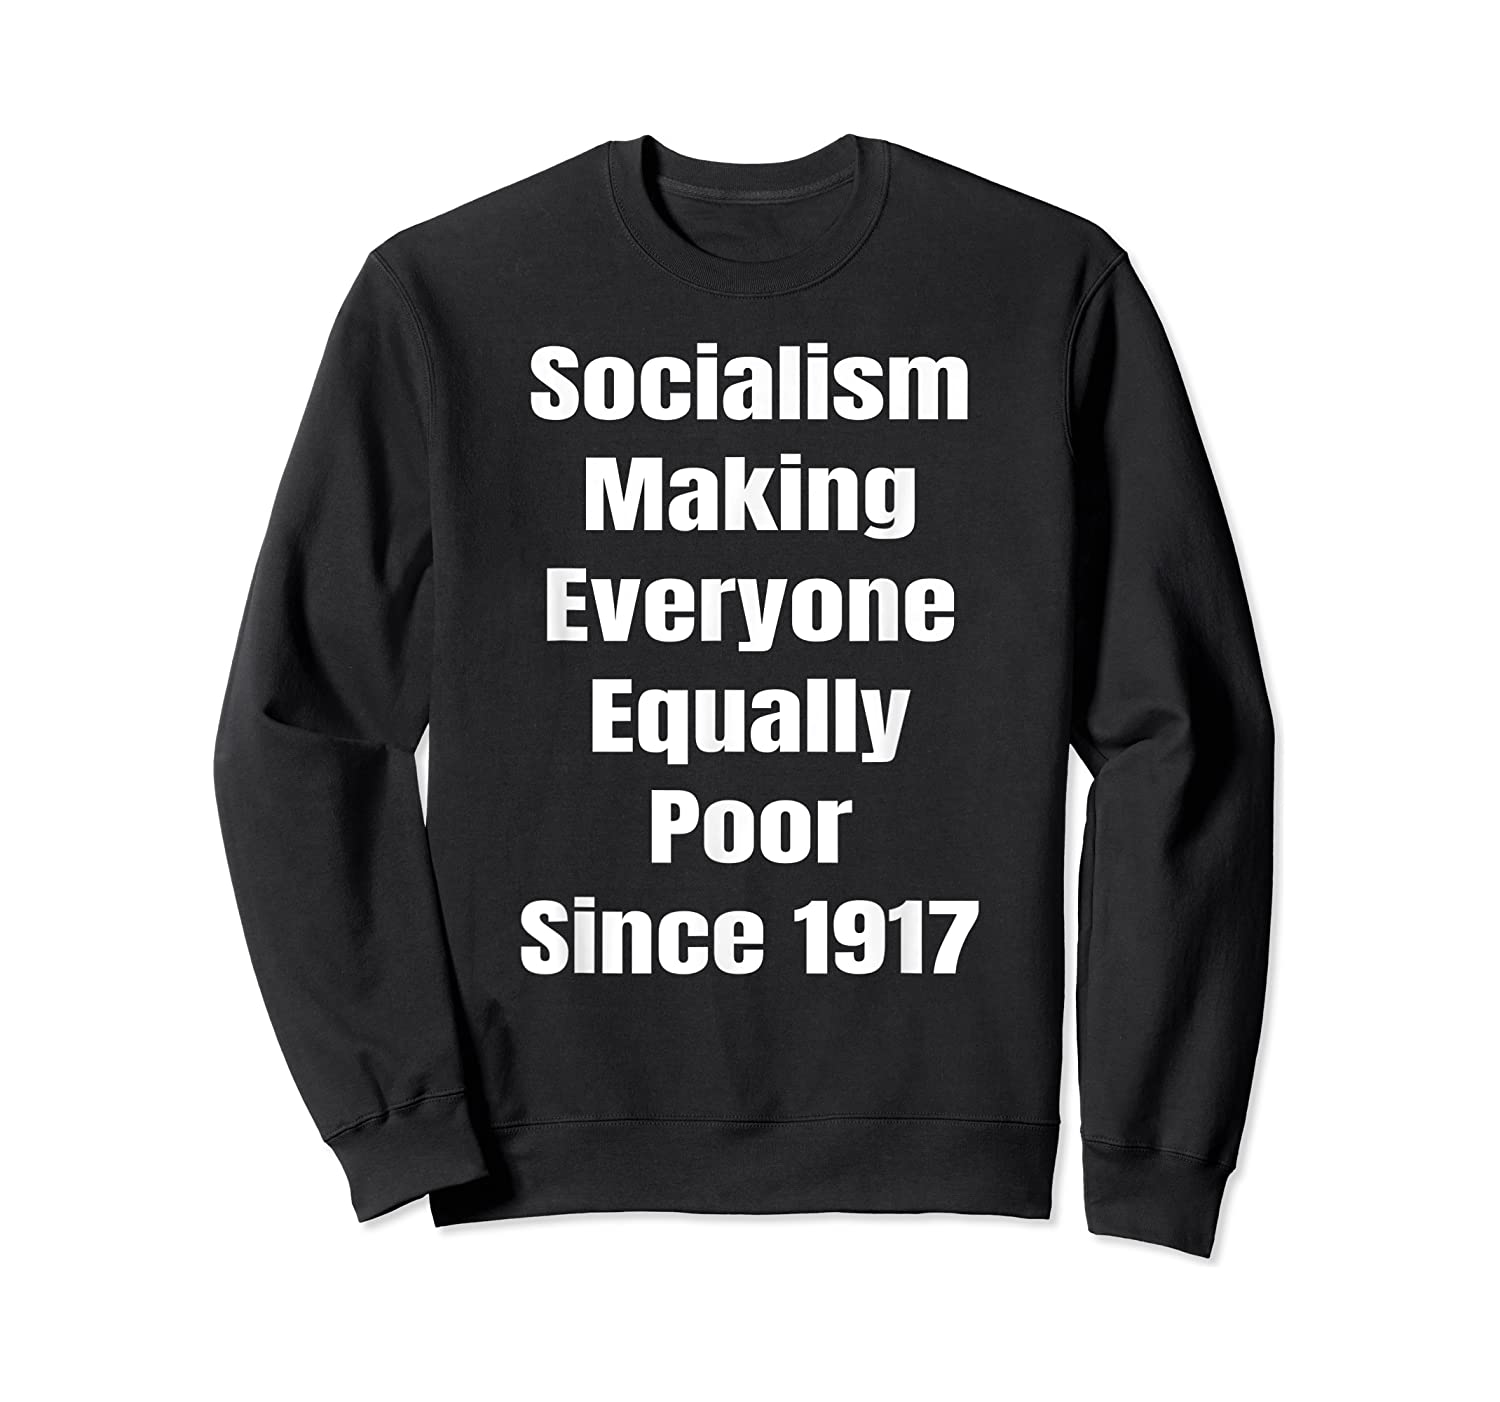 Socialism Making Everyone Equally Poor Since 1917 Shirts Crewneck Sweater